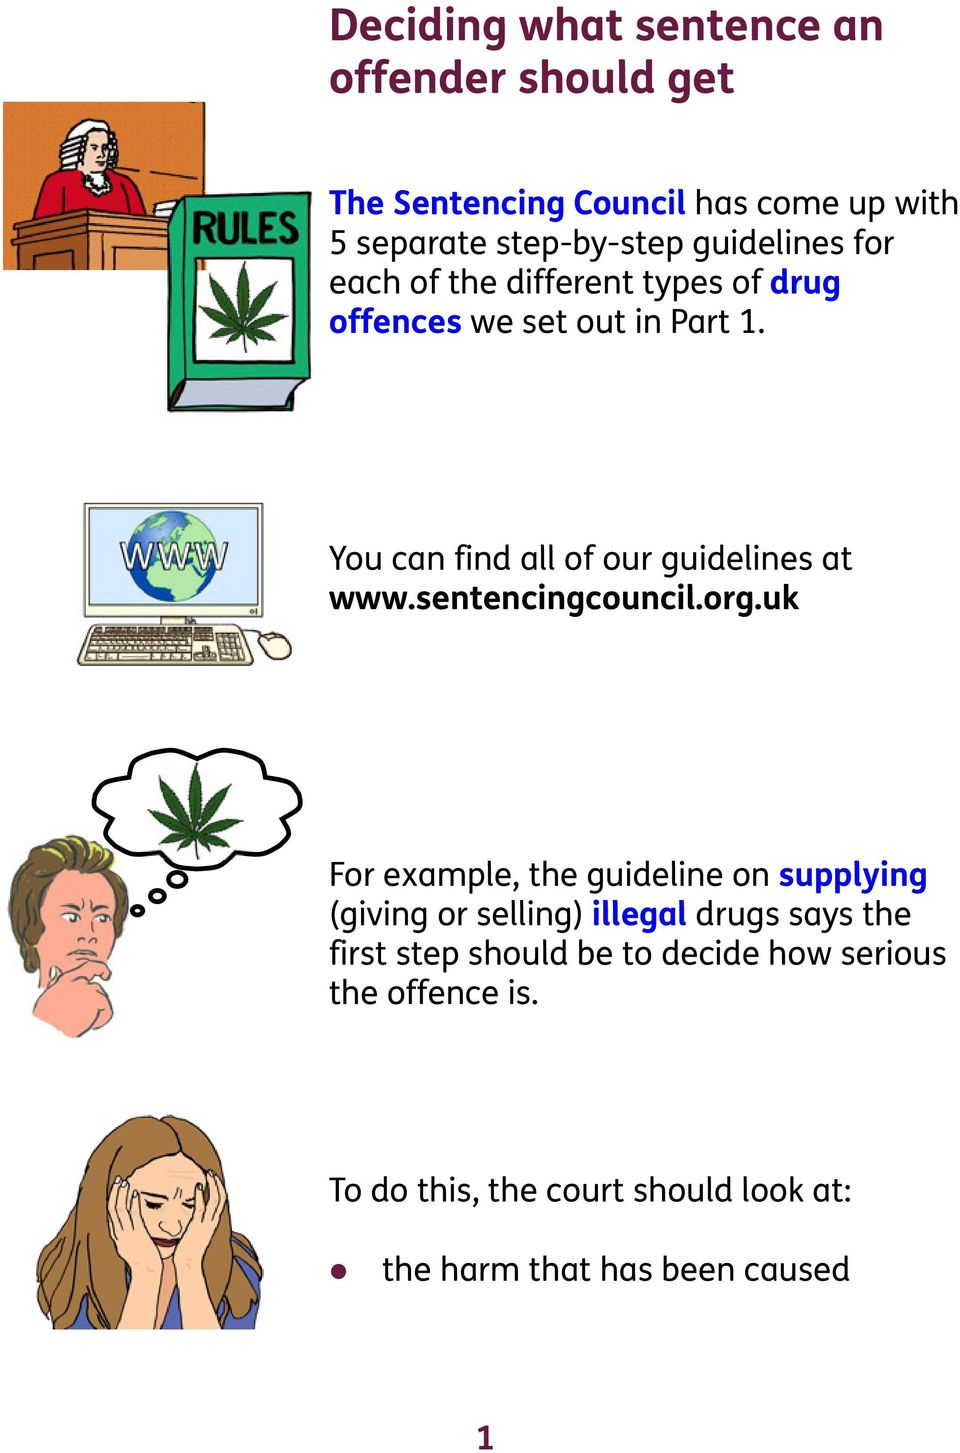 You can find all of our guidelines at www.sentencingcouncil.org.